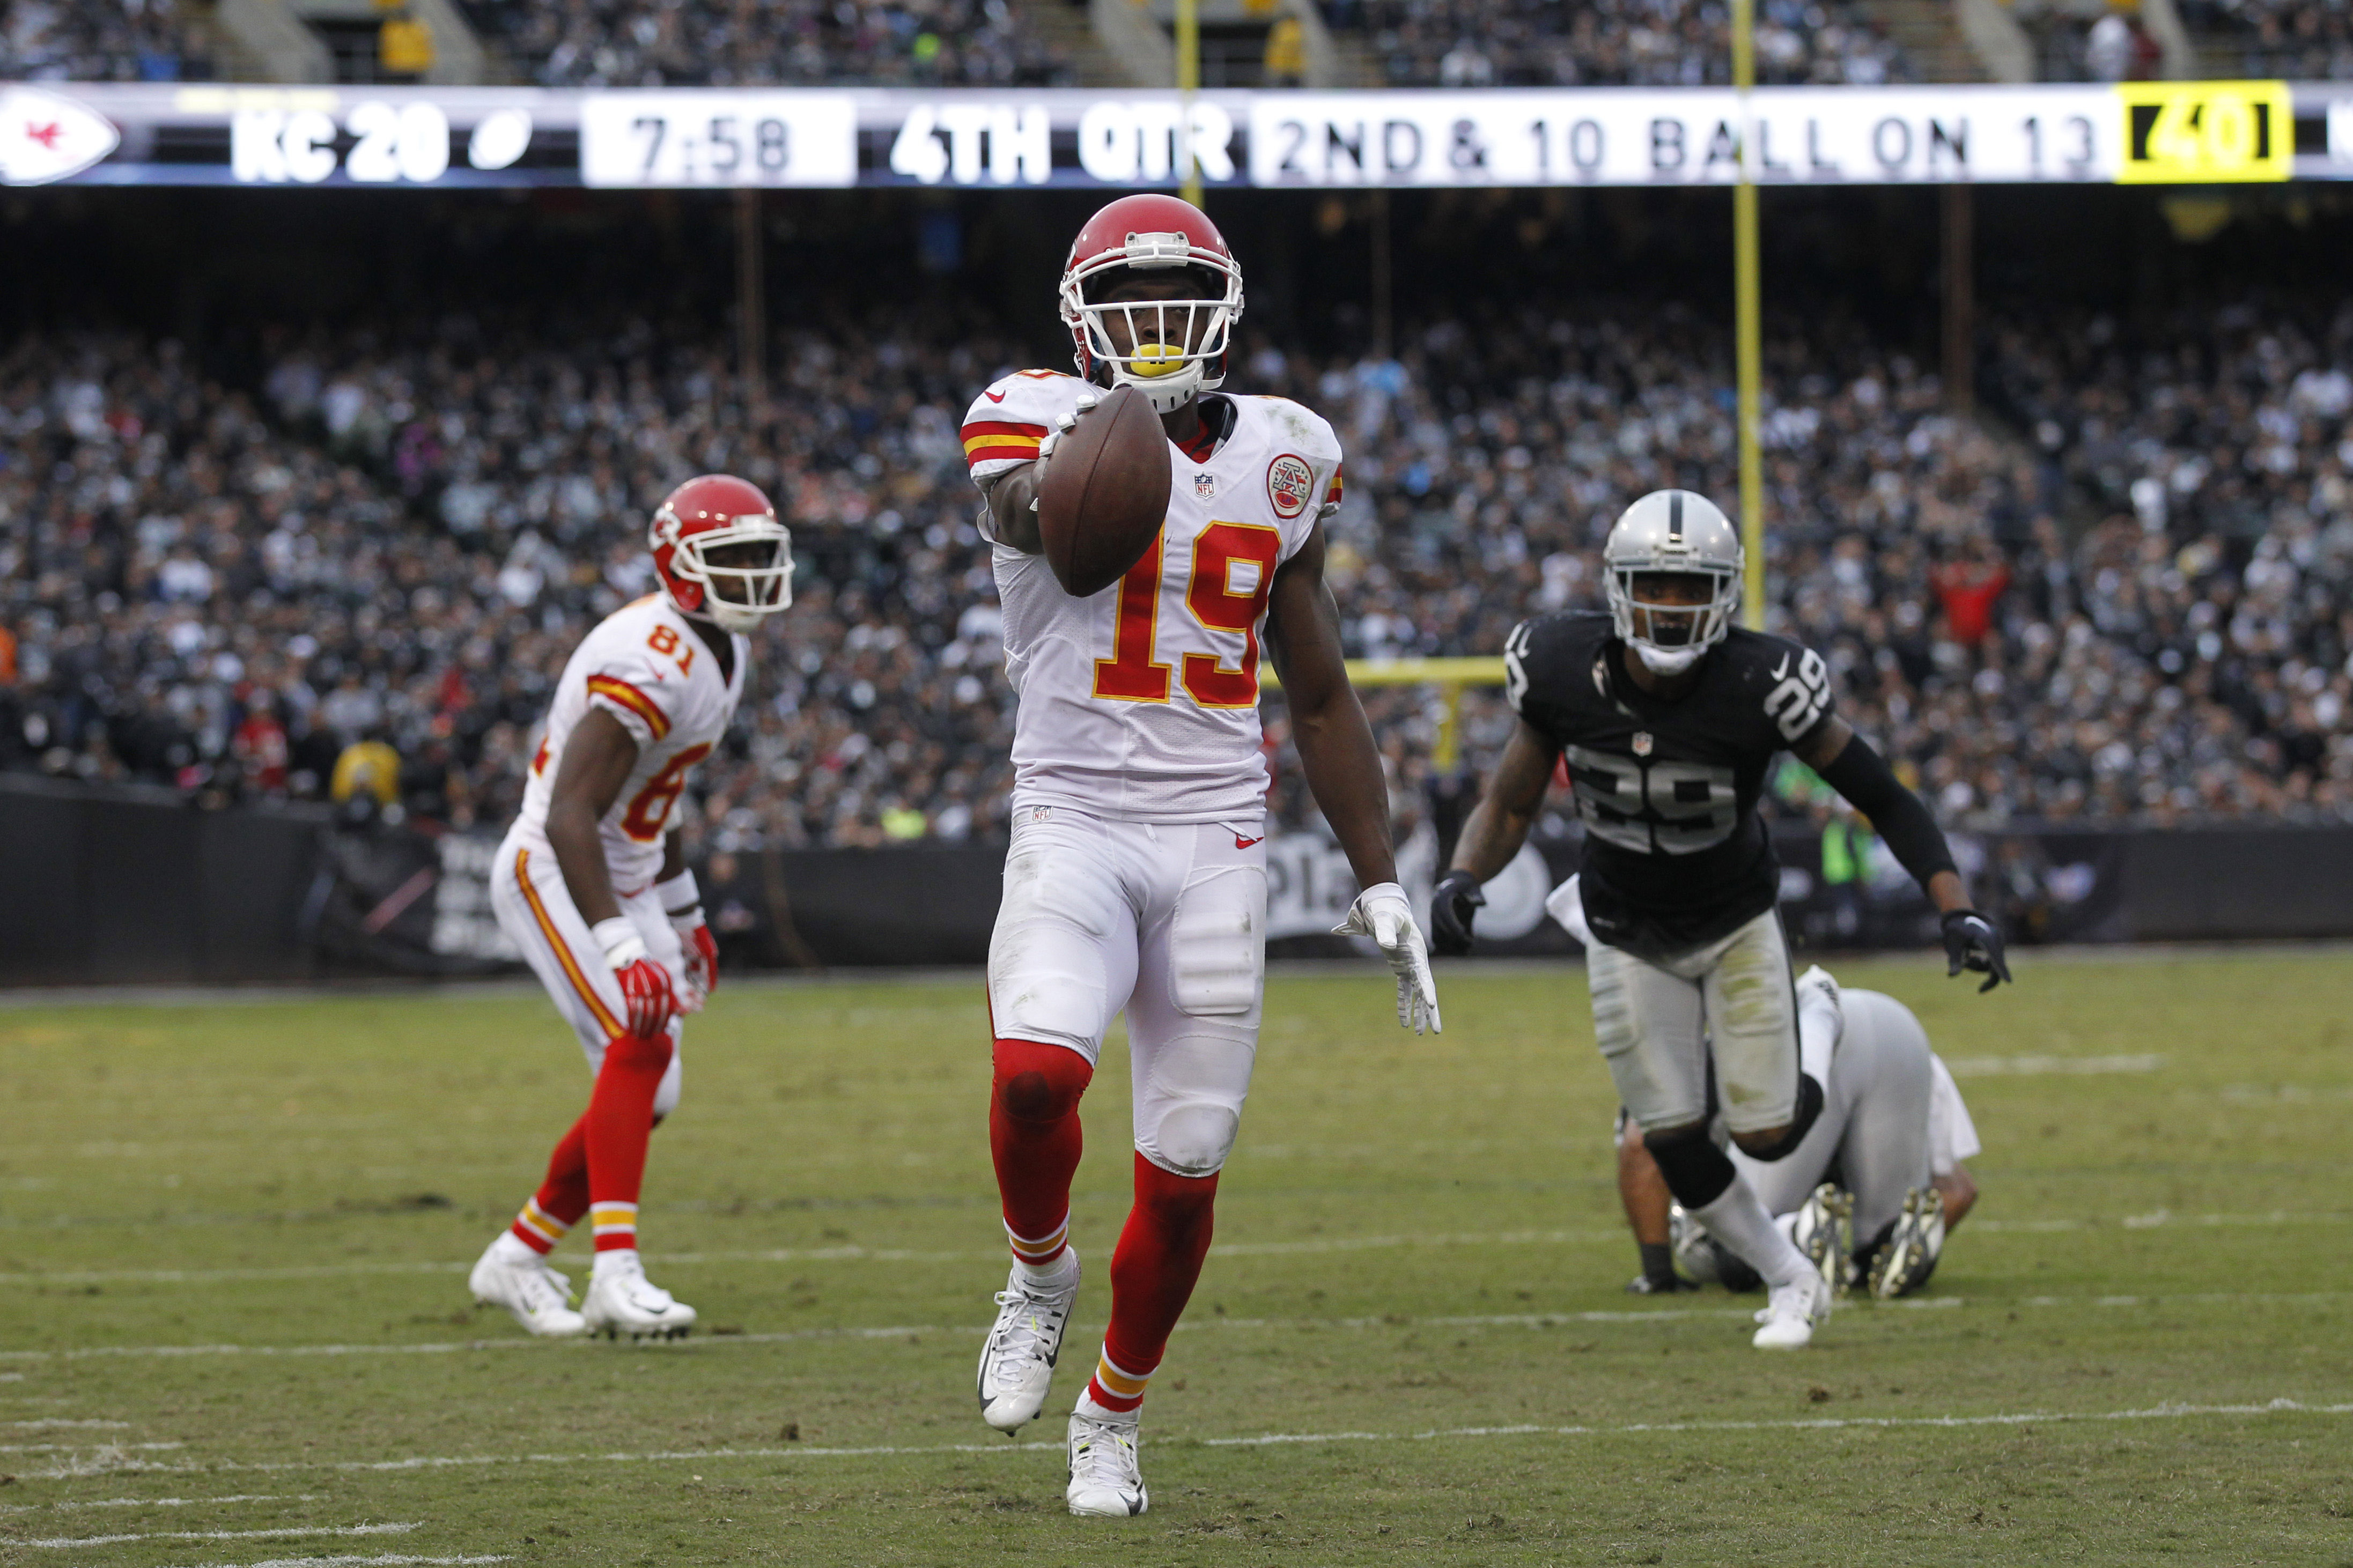 8981329-nfl-kansas-city-chiefs-at-oakland-raiders